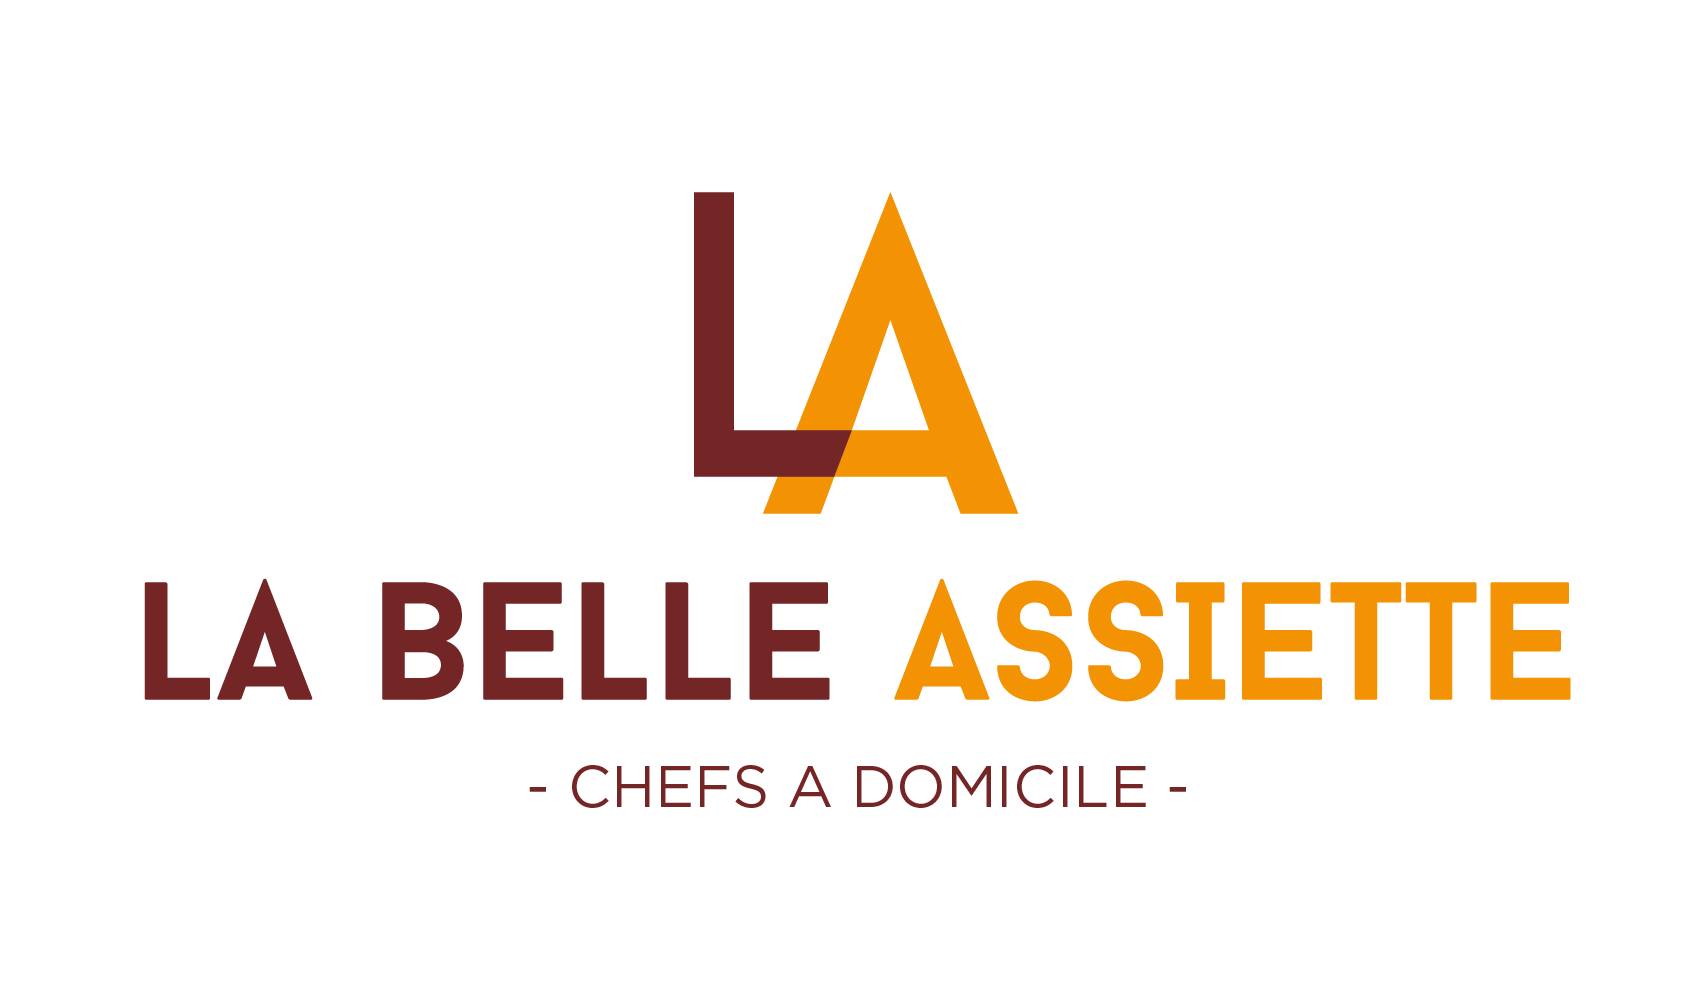 La Belle Assiette: Revolutionising catering service by sending chefs to cook in homes